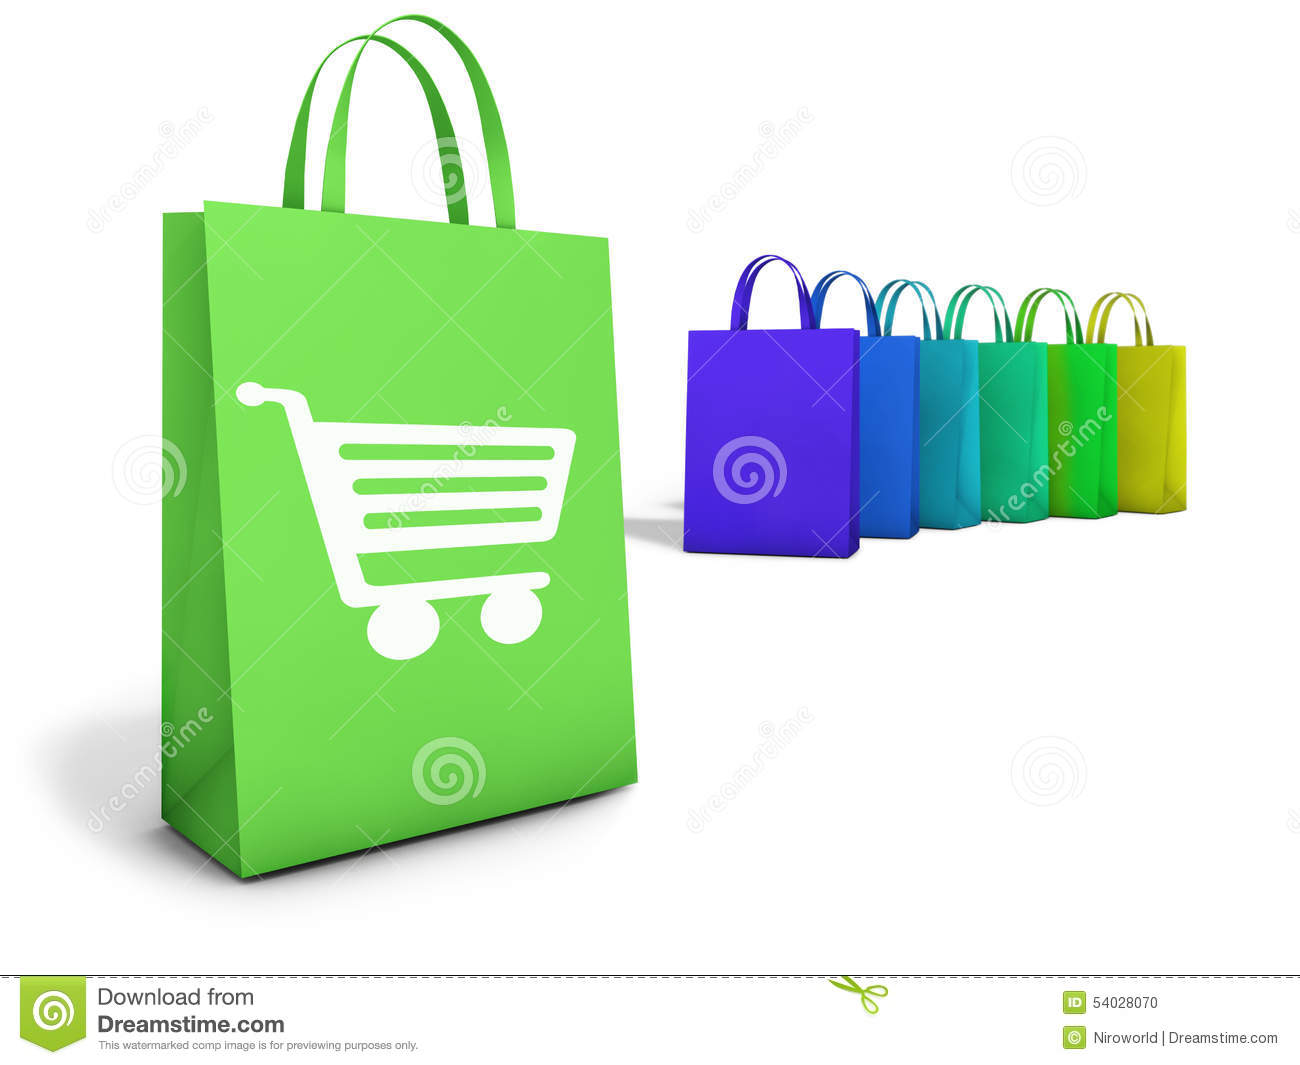 Reusable Shopping Bags. Included in Onya's product lineup is a range of shopping bags made from recycled plastic bottles. These quality reusable shopping bags have amazing properties, such that you would never guess what they were made from if you didn't already know. Attractive, practical, and .